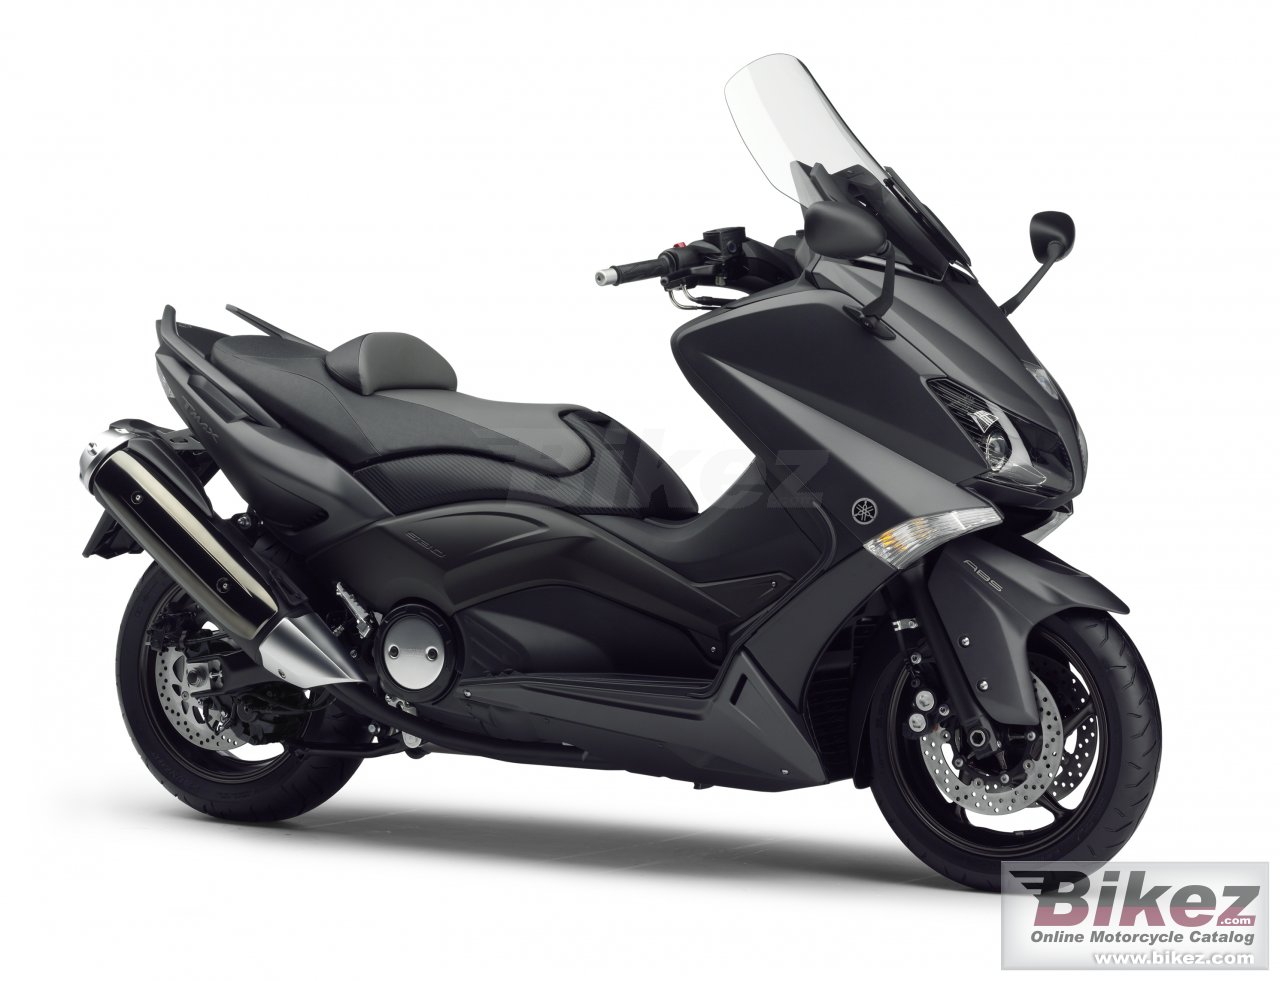 Big Yamaha tmax abs picture and wallpaper from Bikez.com